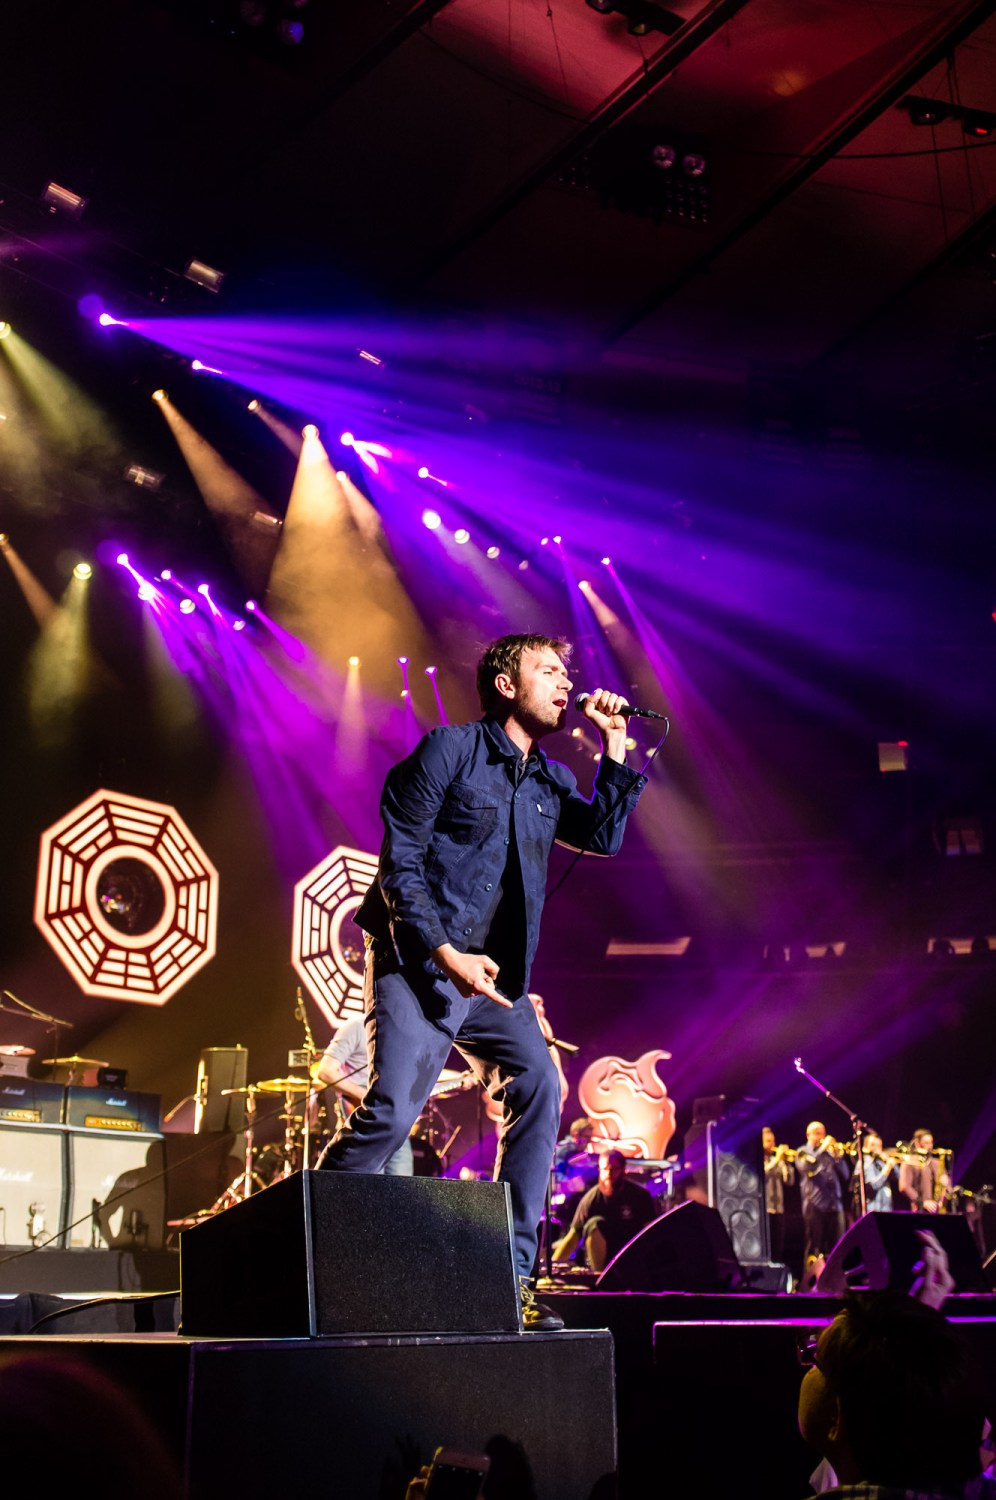 Damon Albarn sings to the crowd at Madison Square Garden